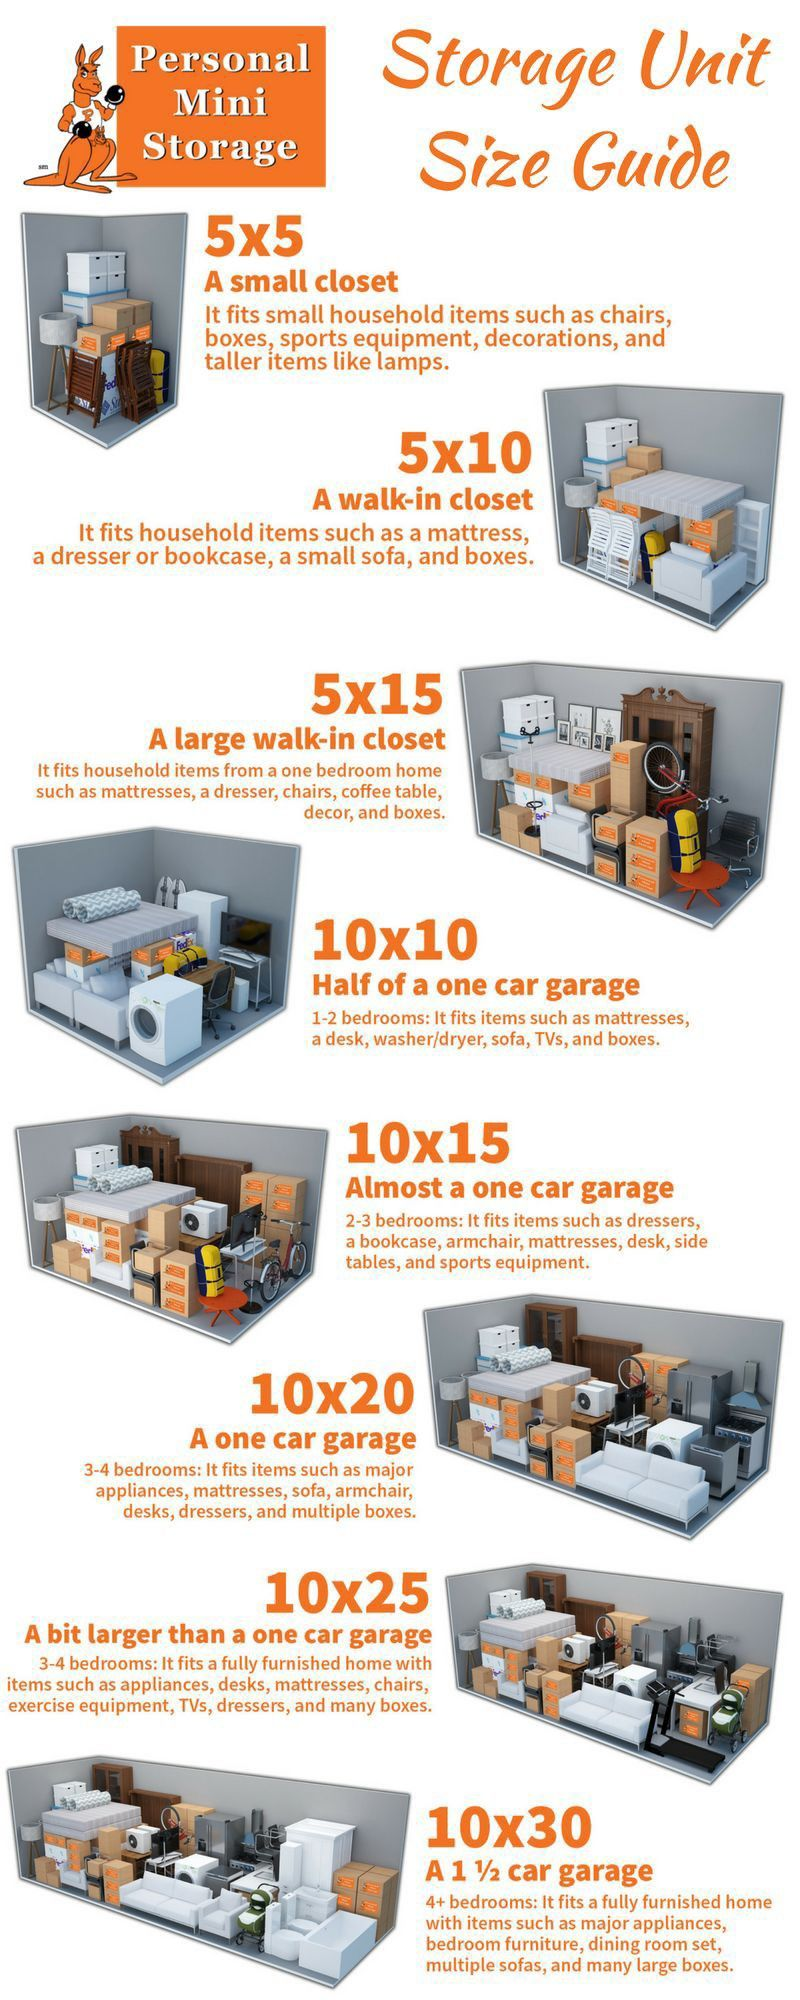 Pin By Mila Lacuna On Moving Storage Unit Organization Self Storage Units Diy Storage Unit